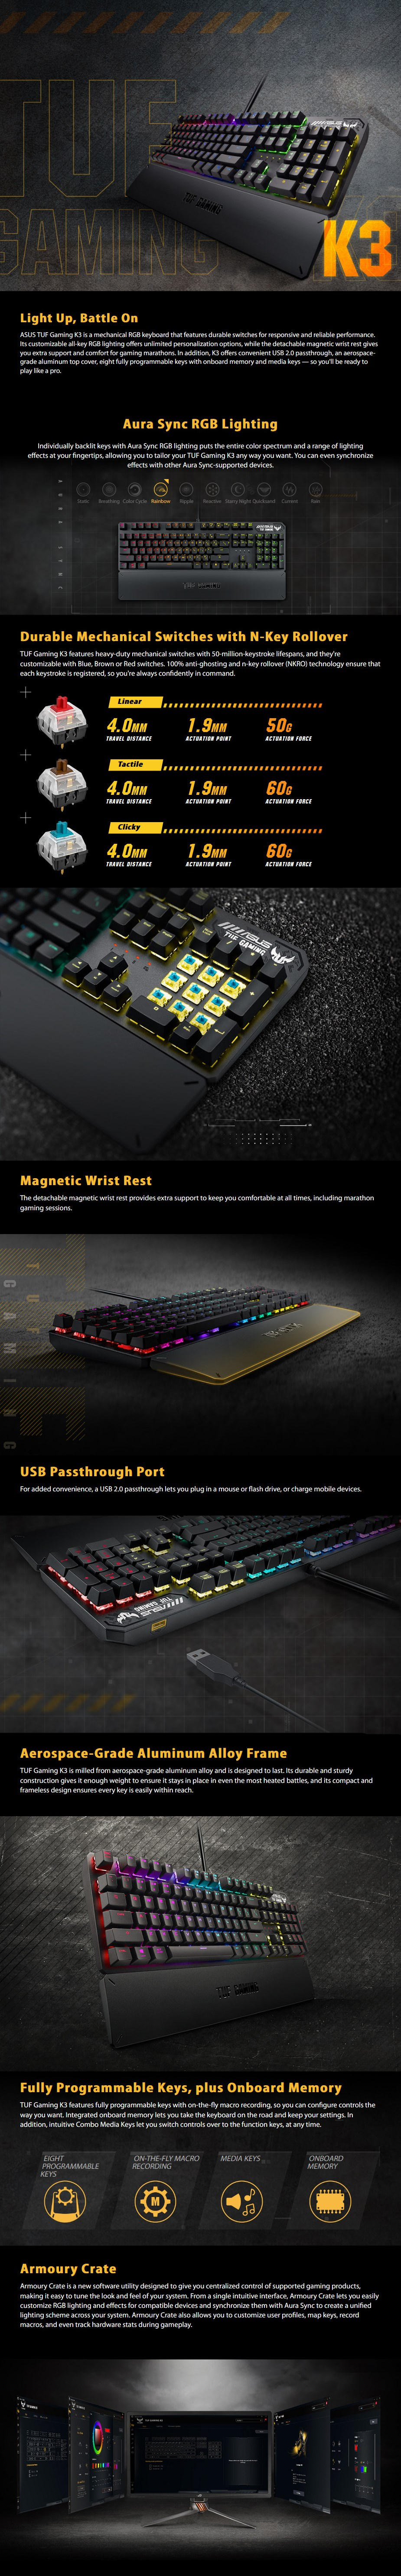 ASUS TUF Gaming K3 Mechanical Gaming Keyboard - Overview 1